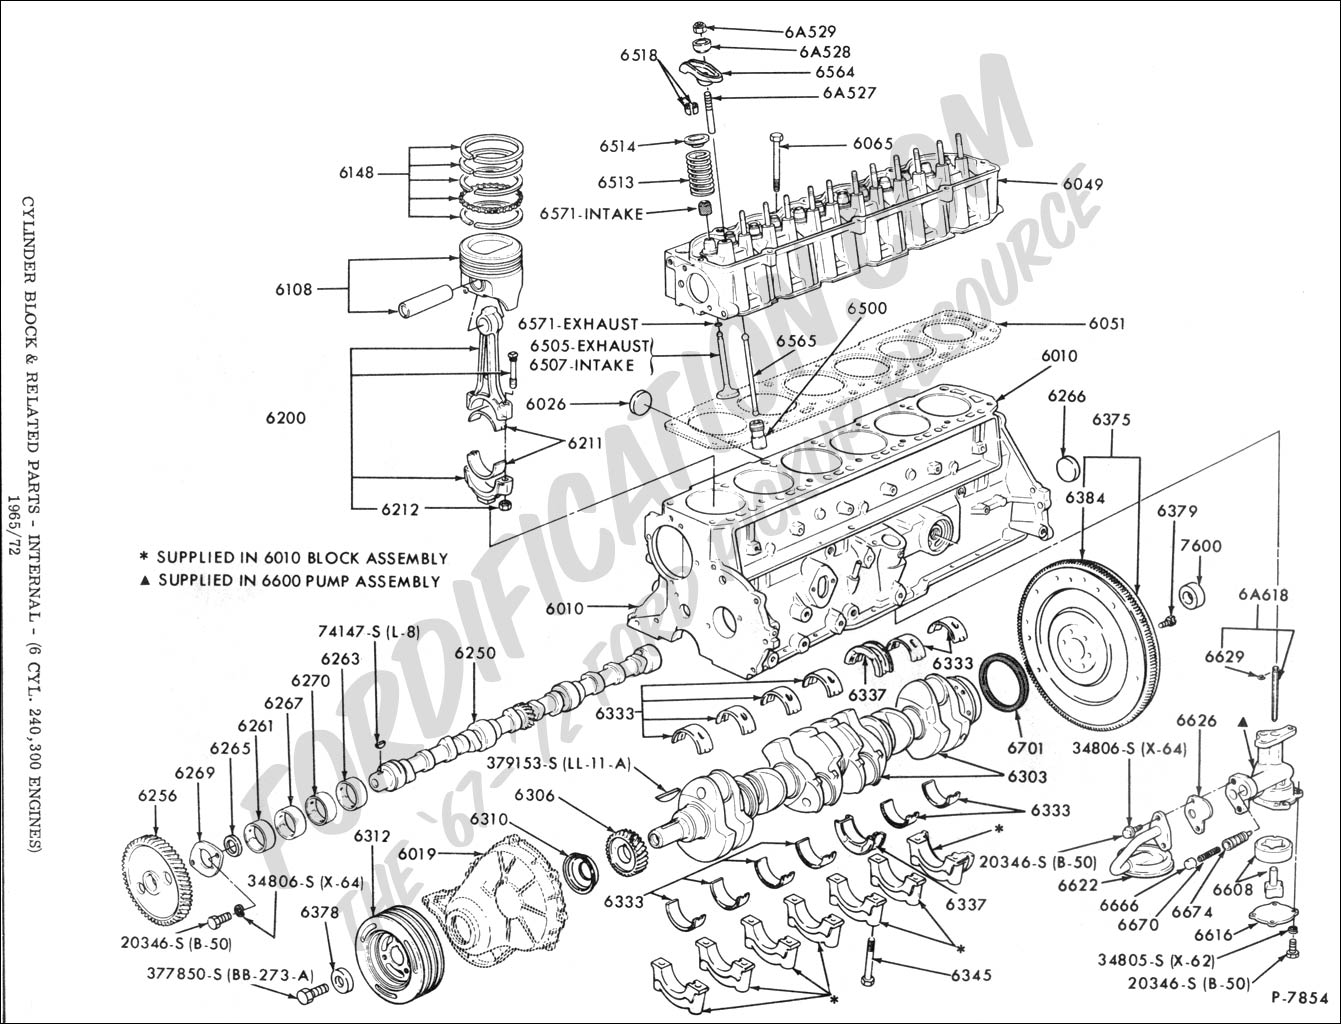 gm engine diagram wiring library Columbia Wiring Diagram 3 4 internal engine diagrams schematics wiring diagrams u2022 rh schoosretailstores chevrolet engine diagram chevy